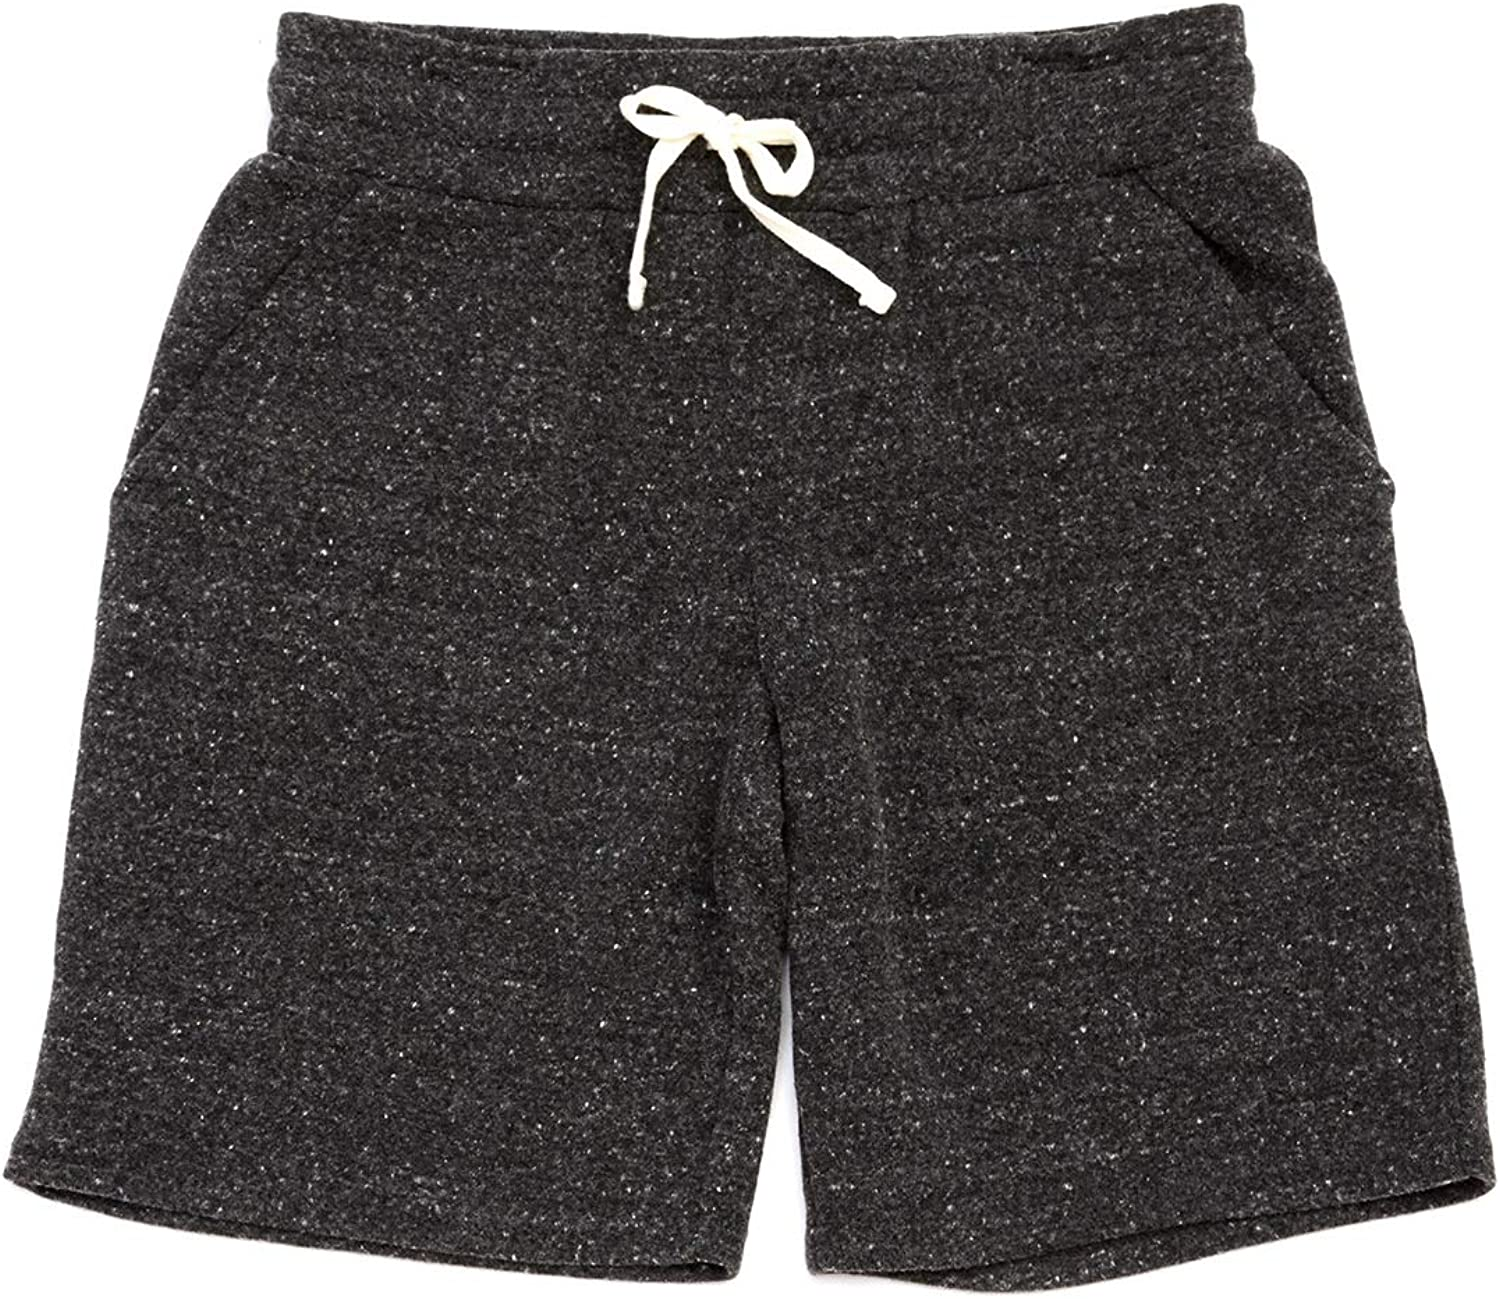 Threads 4 Thought Boys Triblend Knit Short - Heather Black - 8